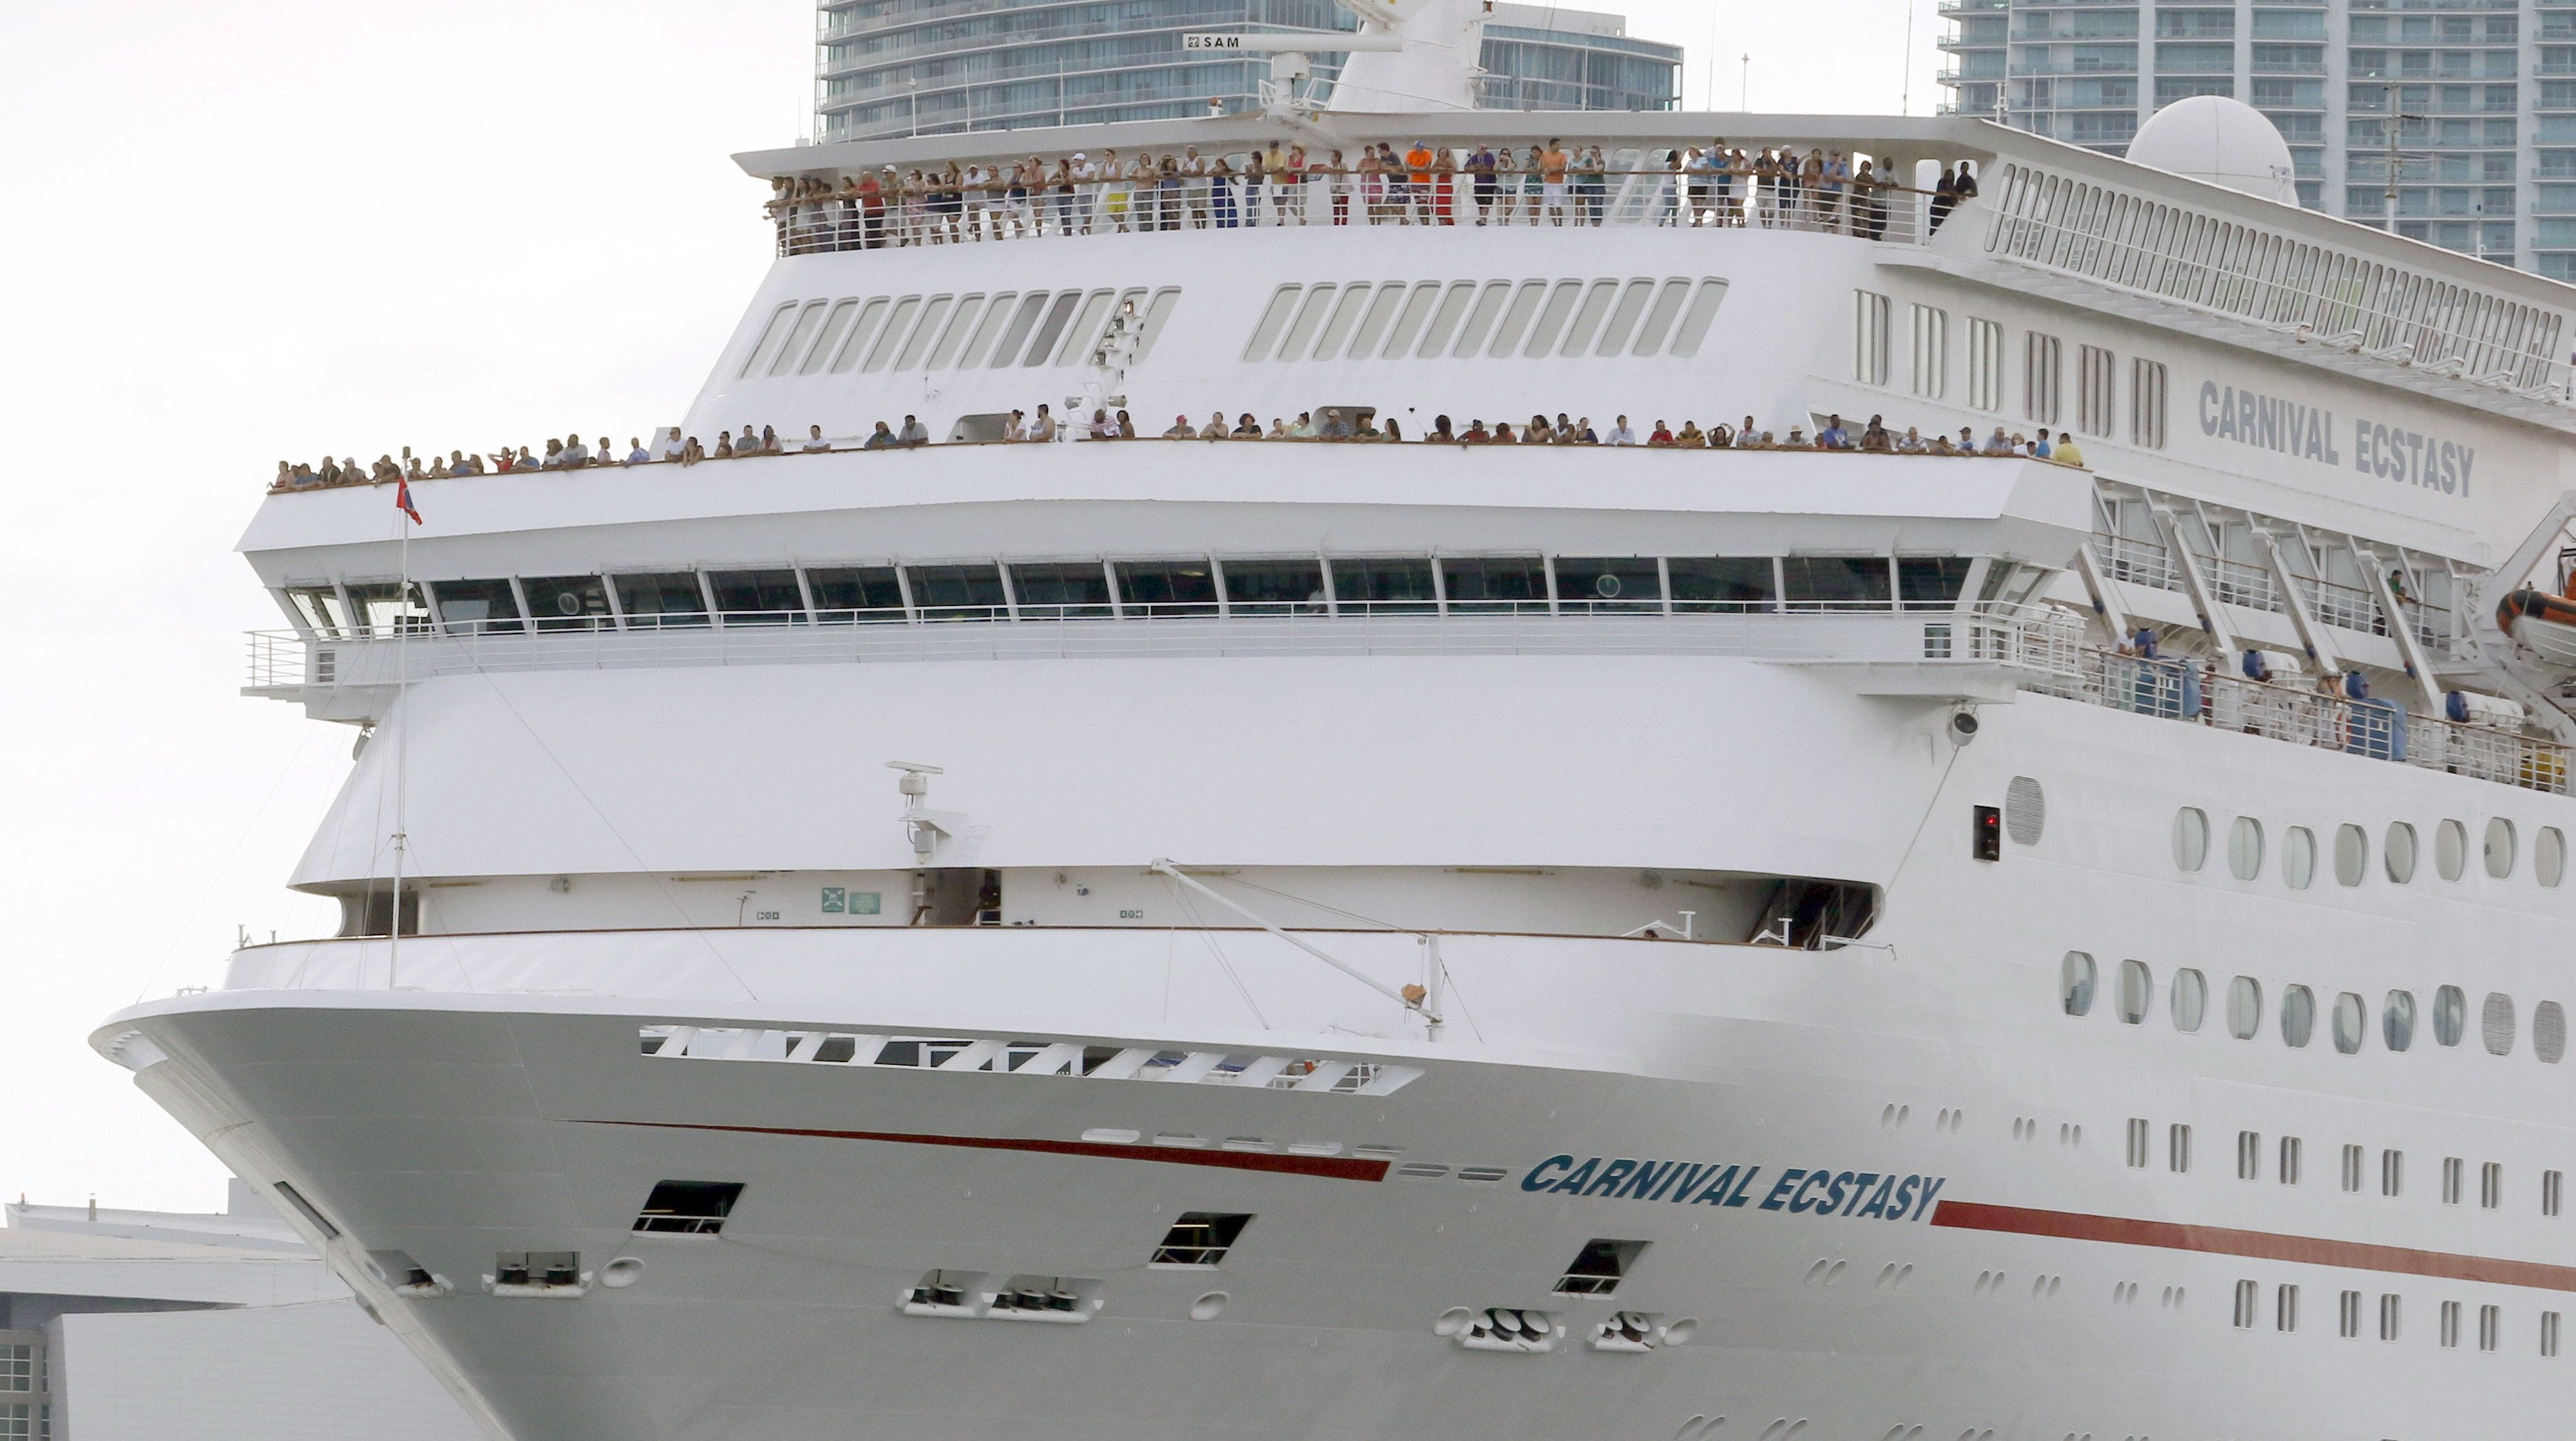 The Carnival cruise ship Ecstasy leaves the port in Miami, Florida, September 18, 2015. The United States on Friday issued regulations easing restrictions on American companies seeking to do business in Cuba and opening up travel in the latest action to weaken the U.S. trade embargo amid warming relations with the Communist country. REUTERS/Joe Skipper